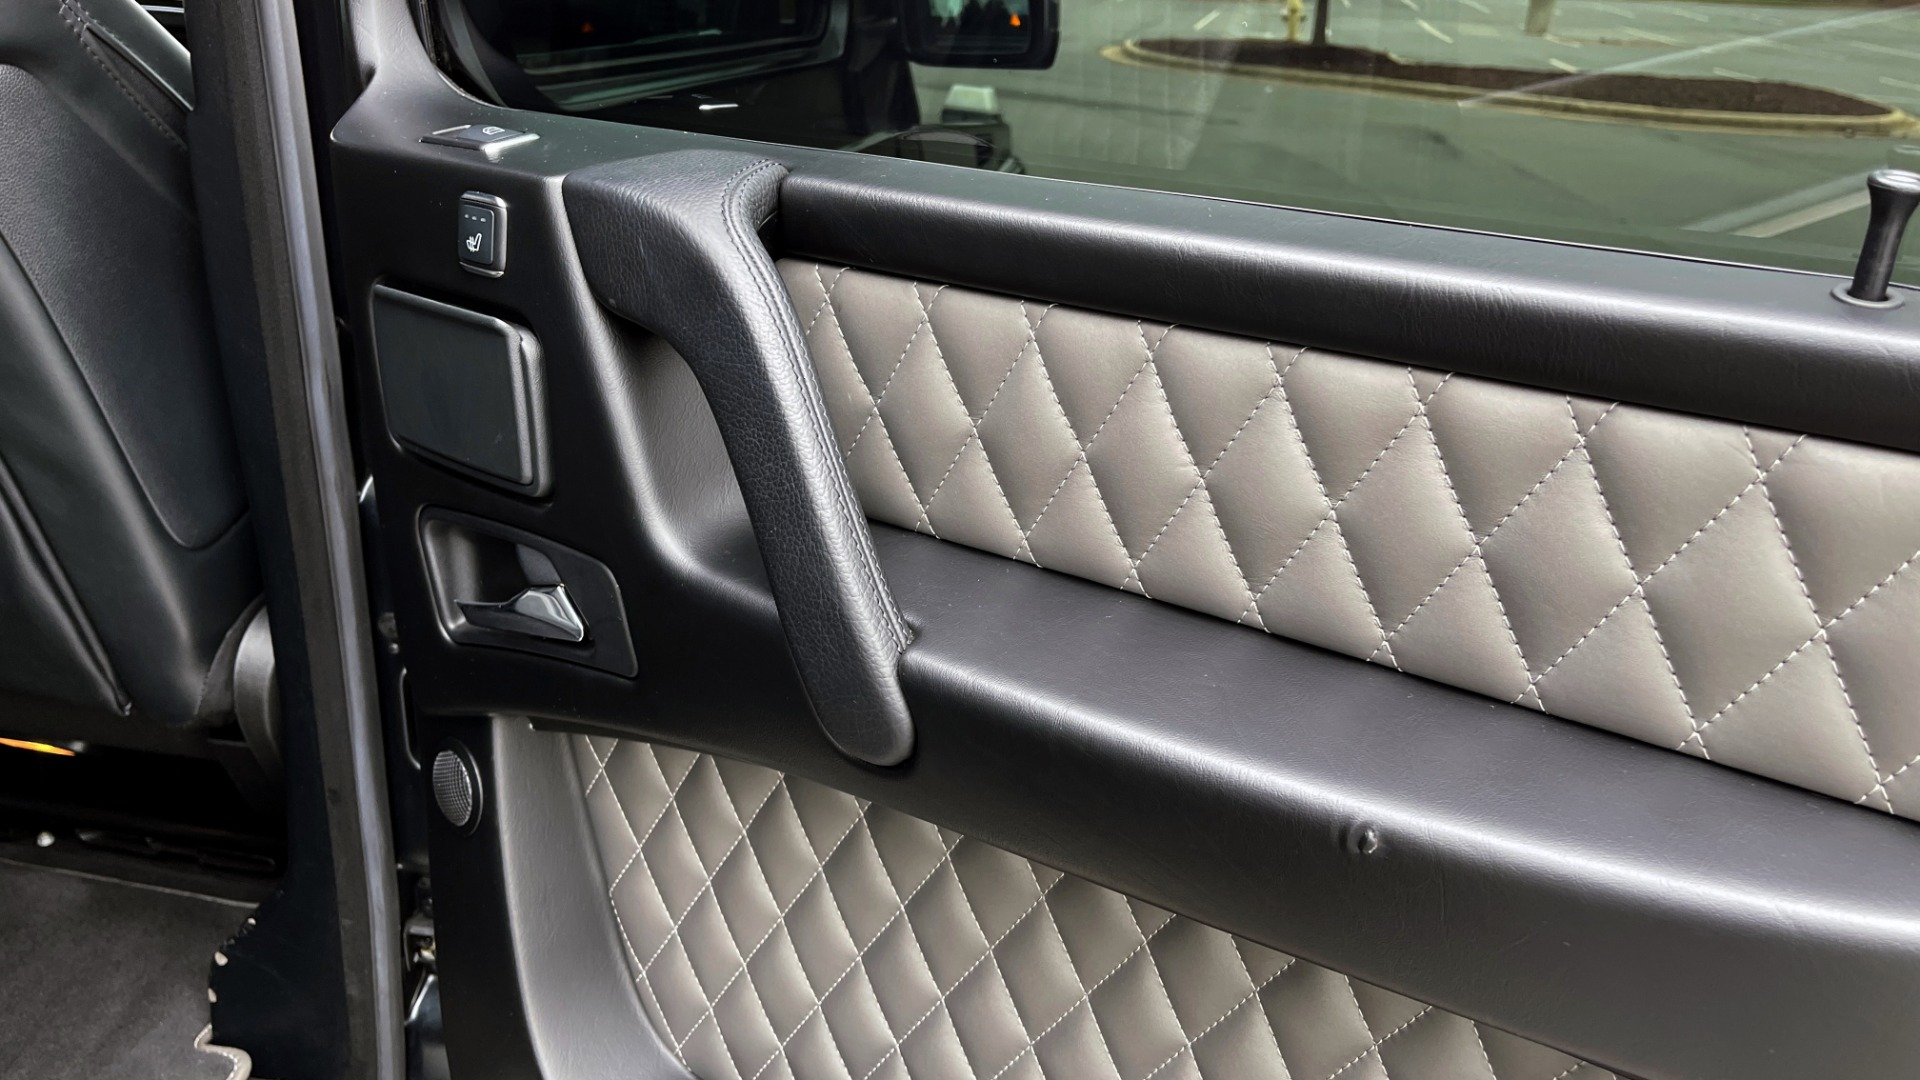 Used 2017 Mercedes-Benz G-CLASS AMG G 63 / DESIGNO PKG / NAV / SUNROOF / H/K SND / REARVIEW for sale $124,999 at Formula Imports in Charlotte NC 28227 47